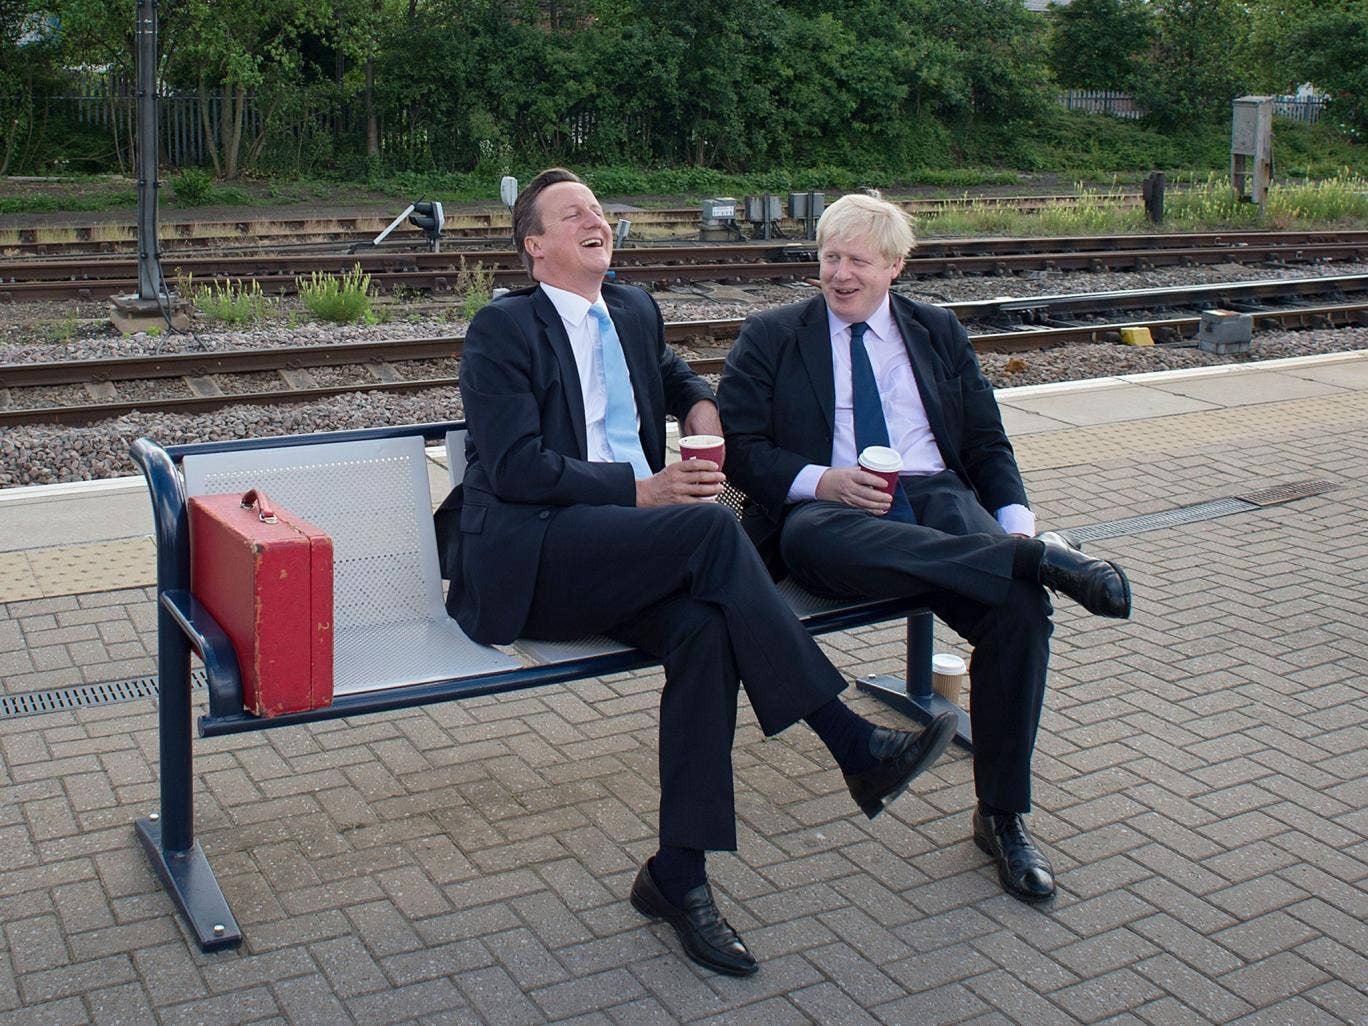 British Prime Minister Prime Minister David Cameron (L) and Mayor of London Boris Johnson wait for a train at Newark station in central England, following a visit to the town were they campaigned ahead of the Newark by-election